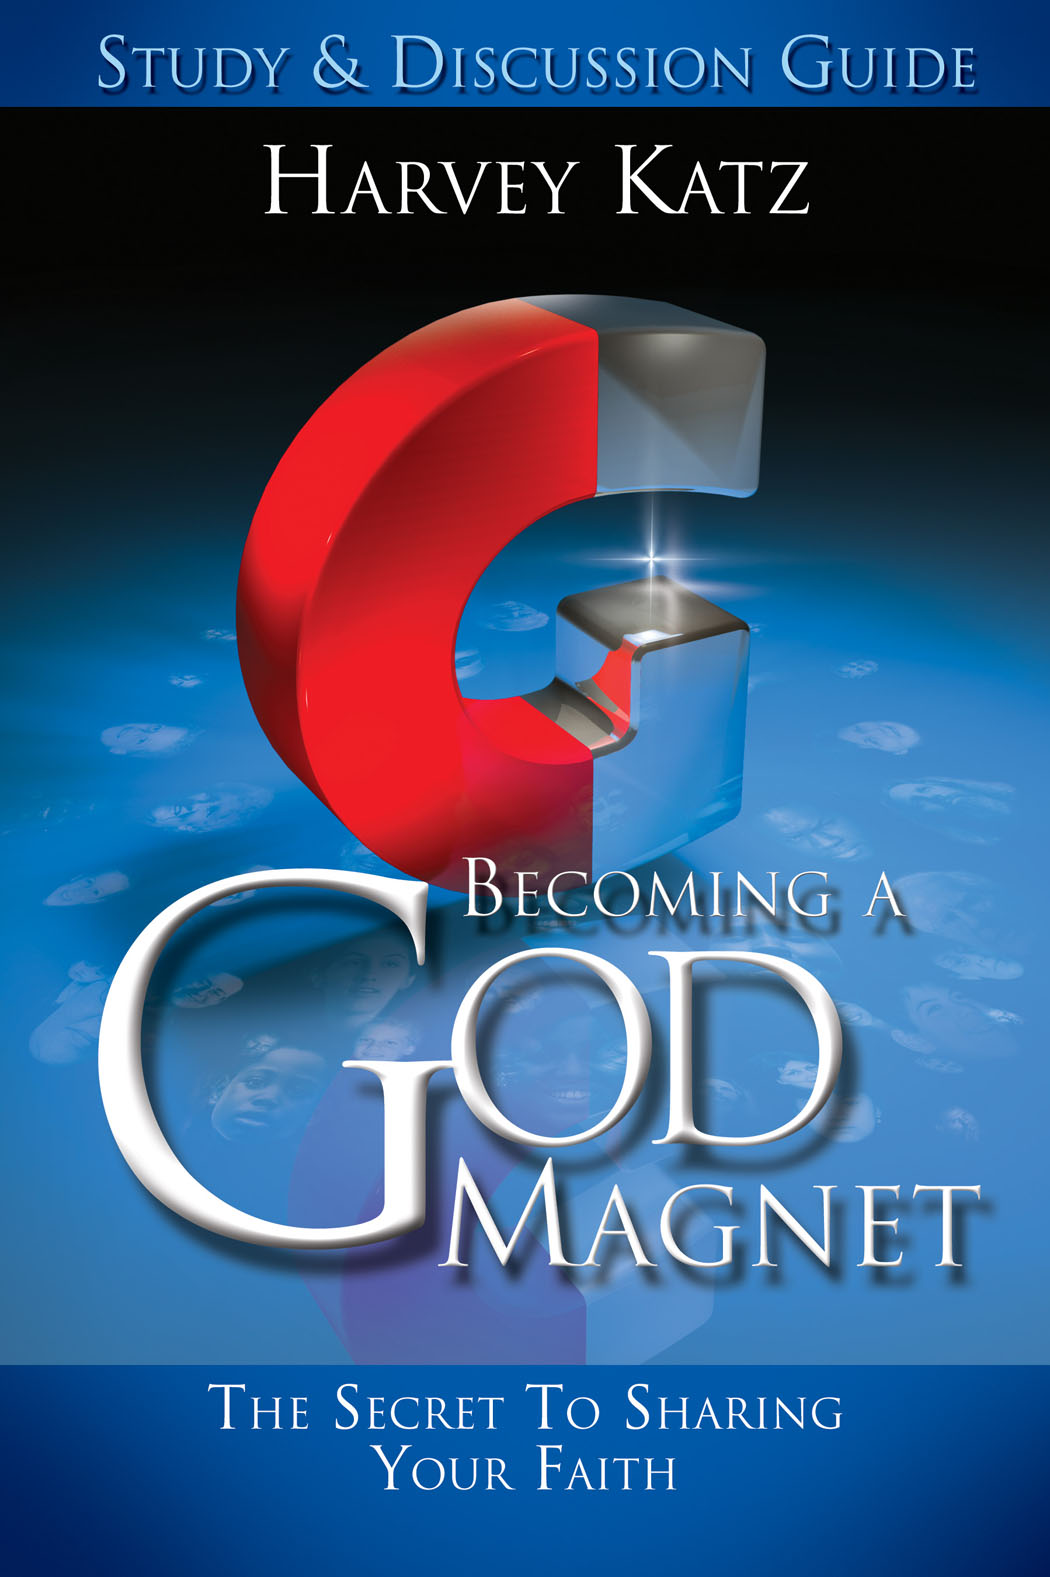 Becoming a God Magnet Study & Discussion Guide